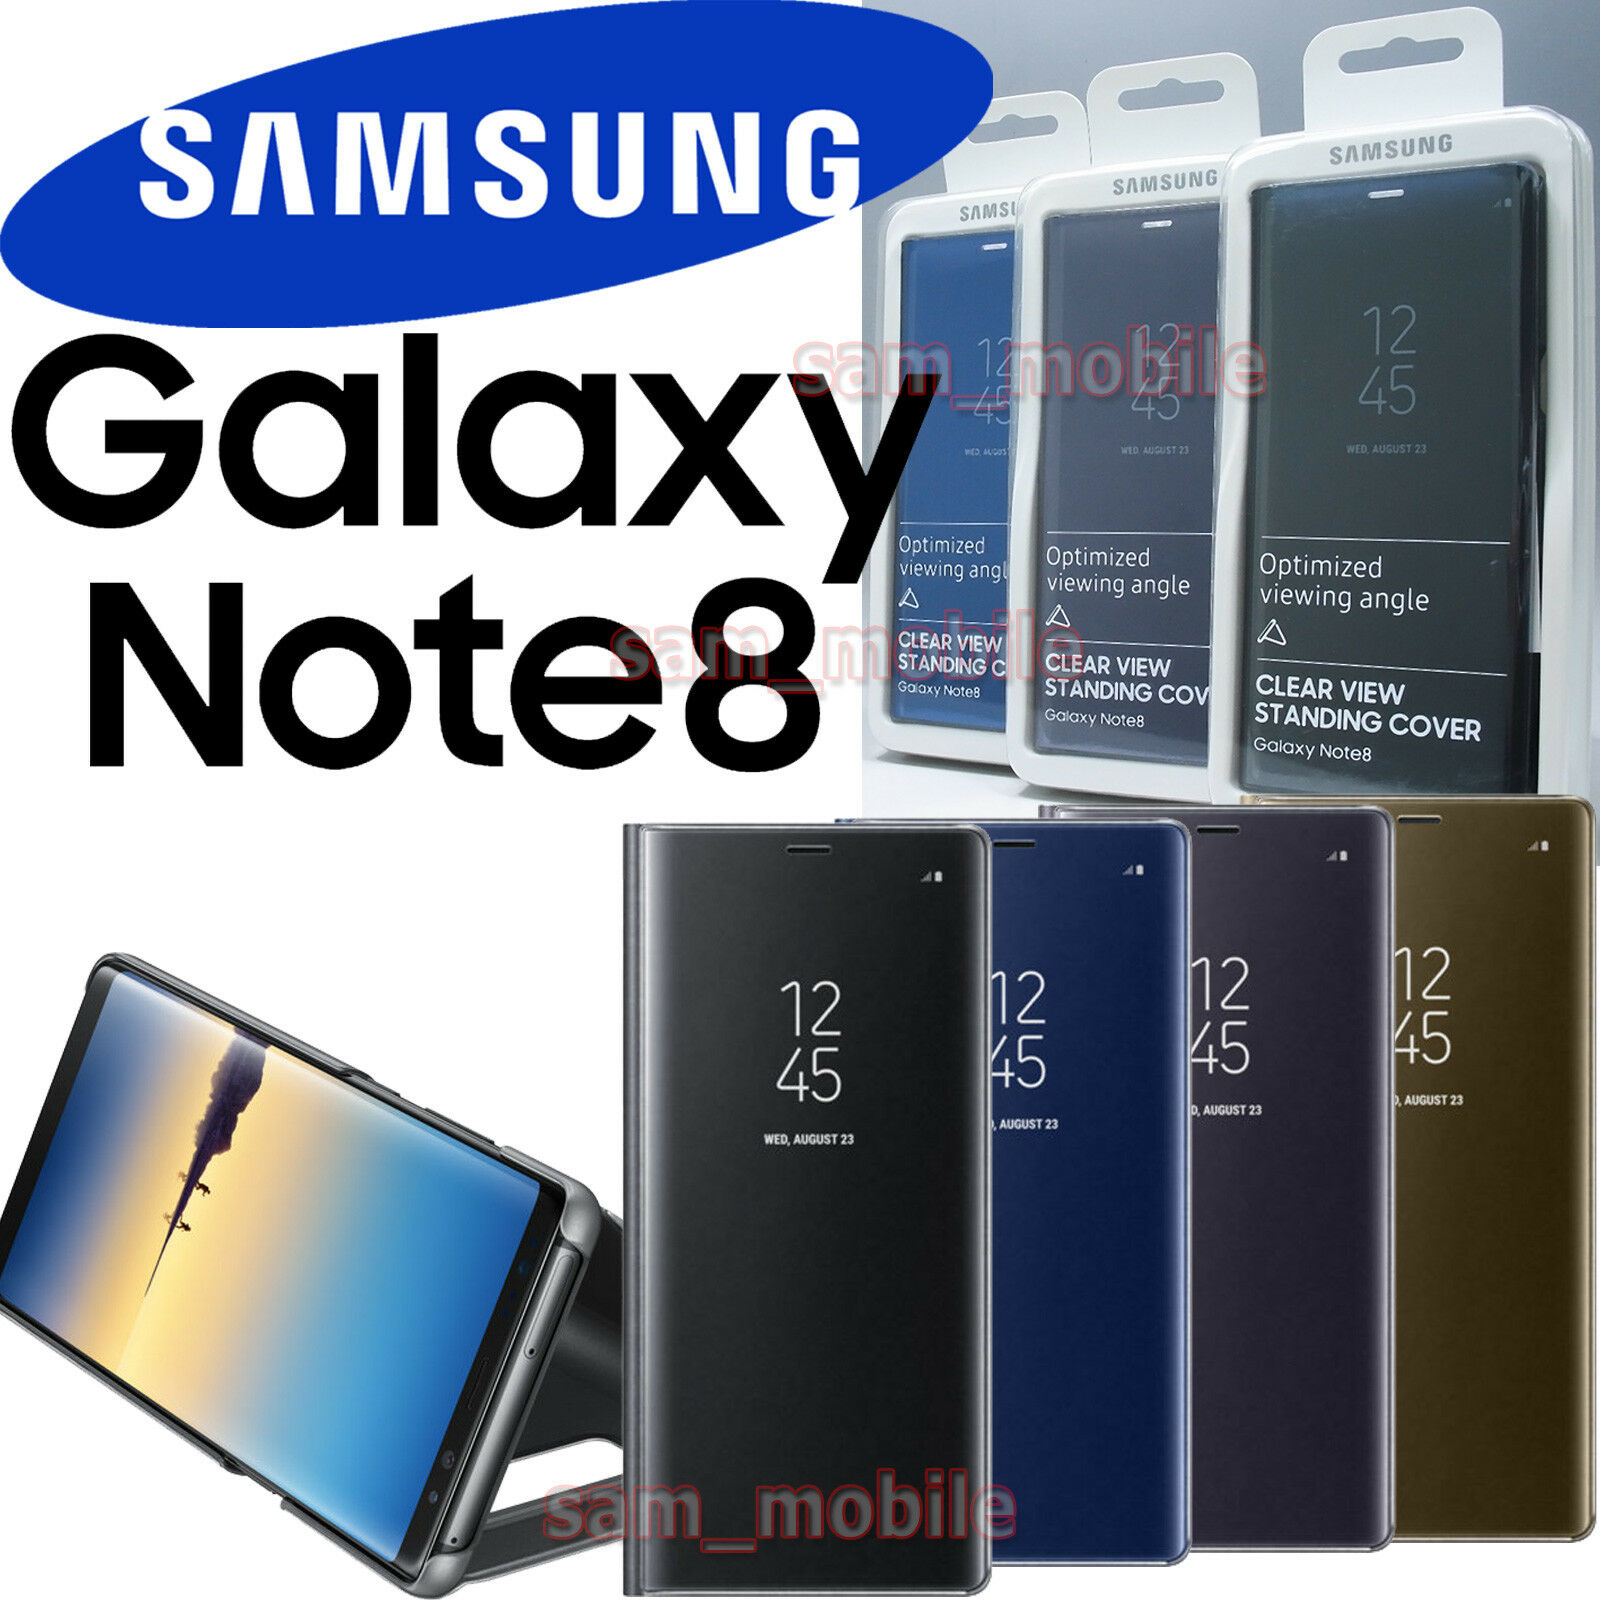 samsung standing cover note 8